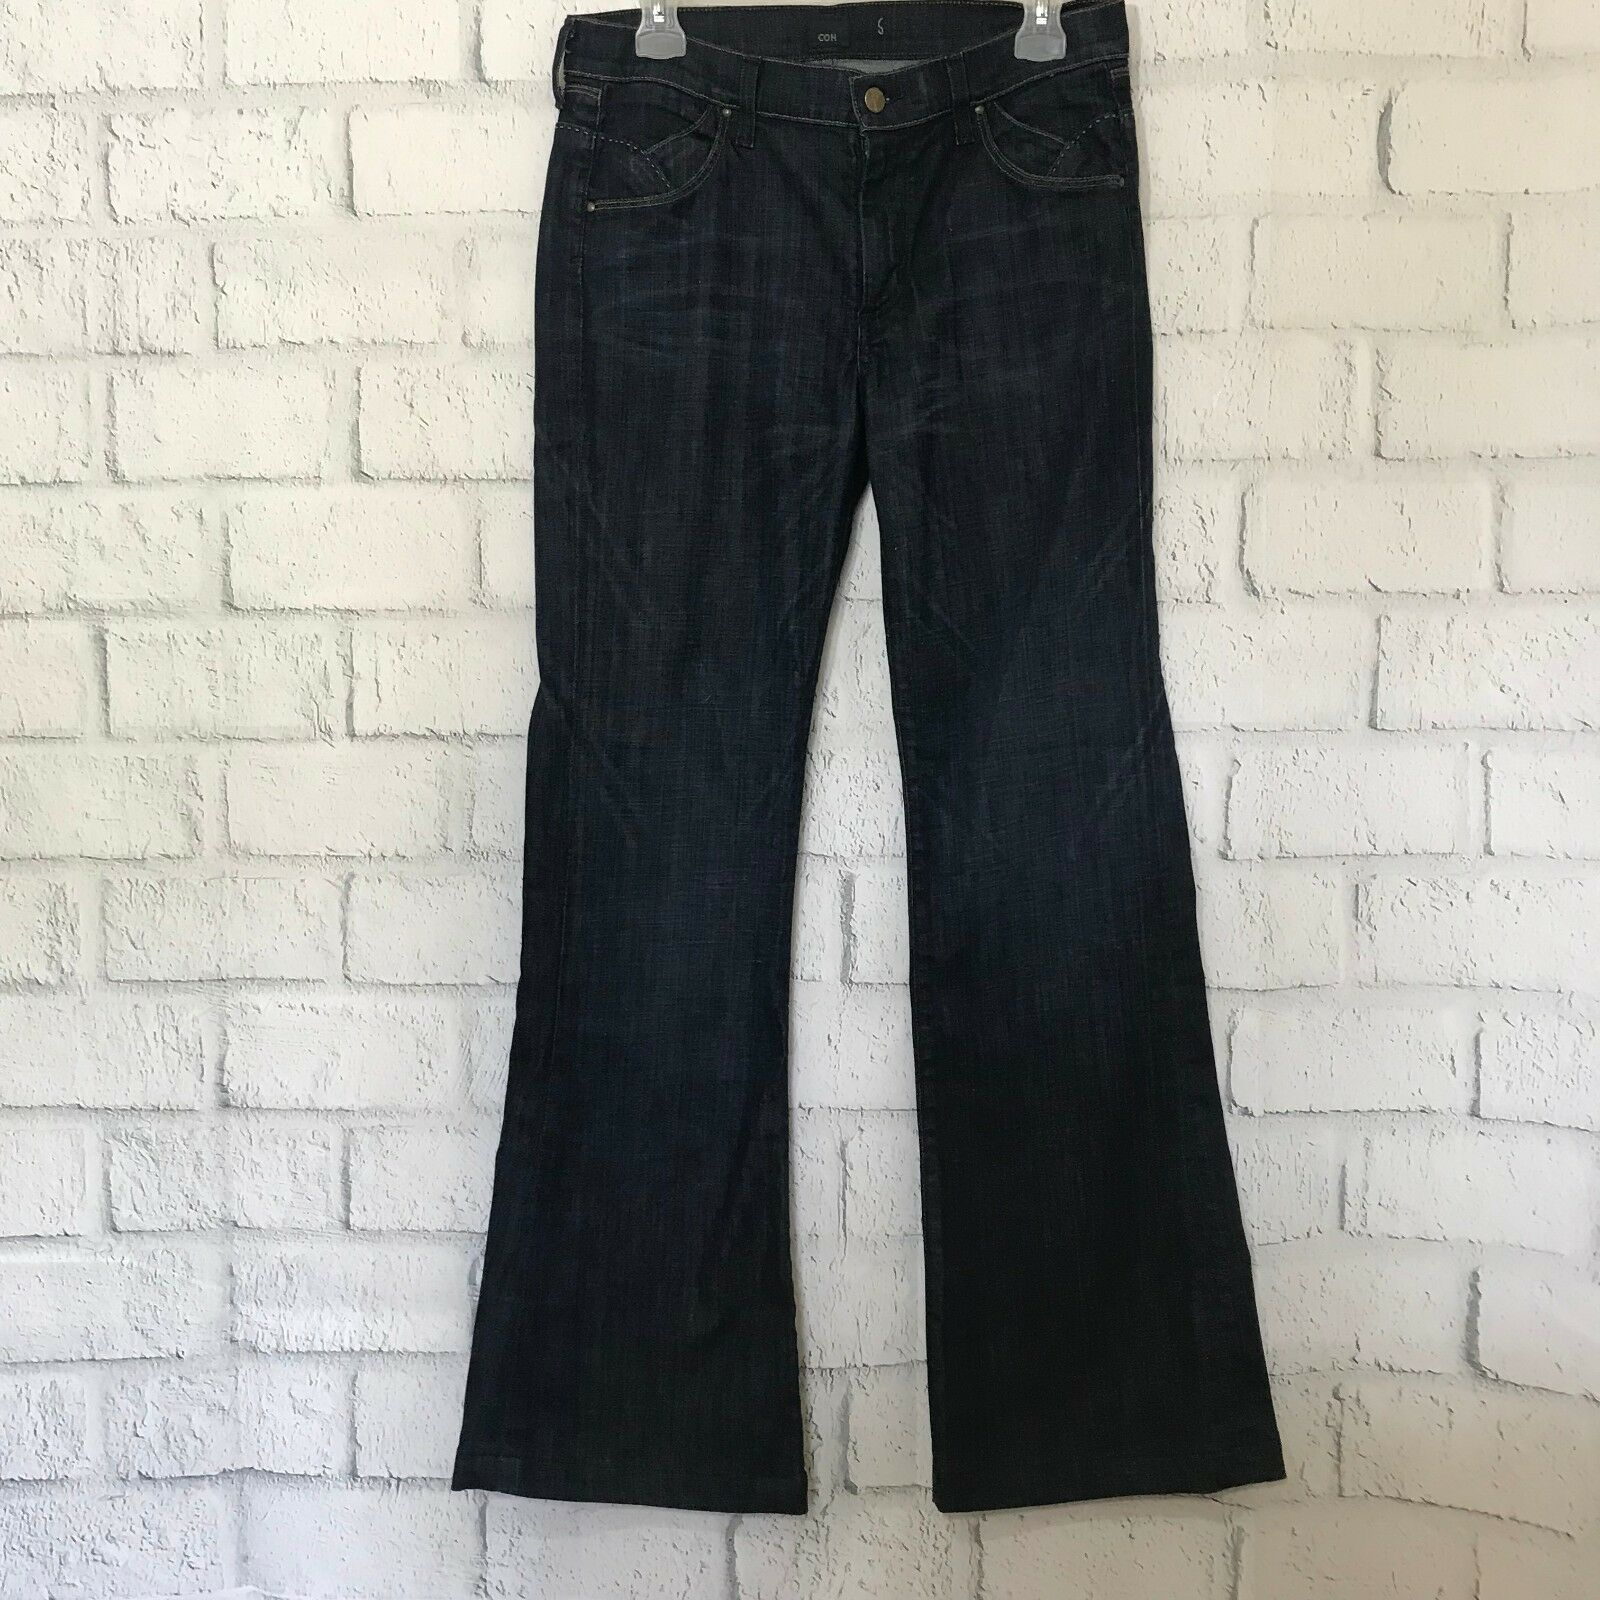 Citizens of Humanity Womens Size 30 Jeans Stretch High Rise Wide Leg Flare